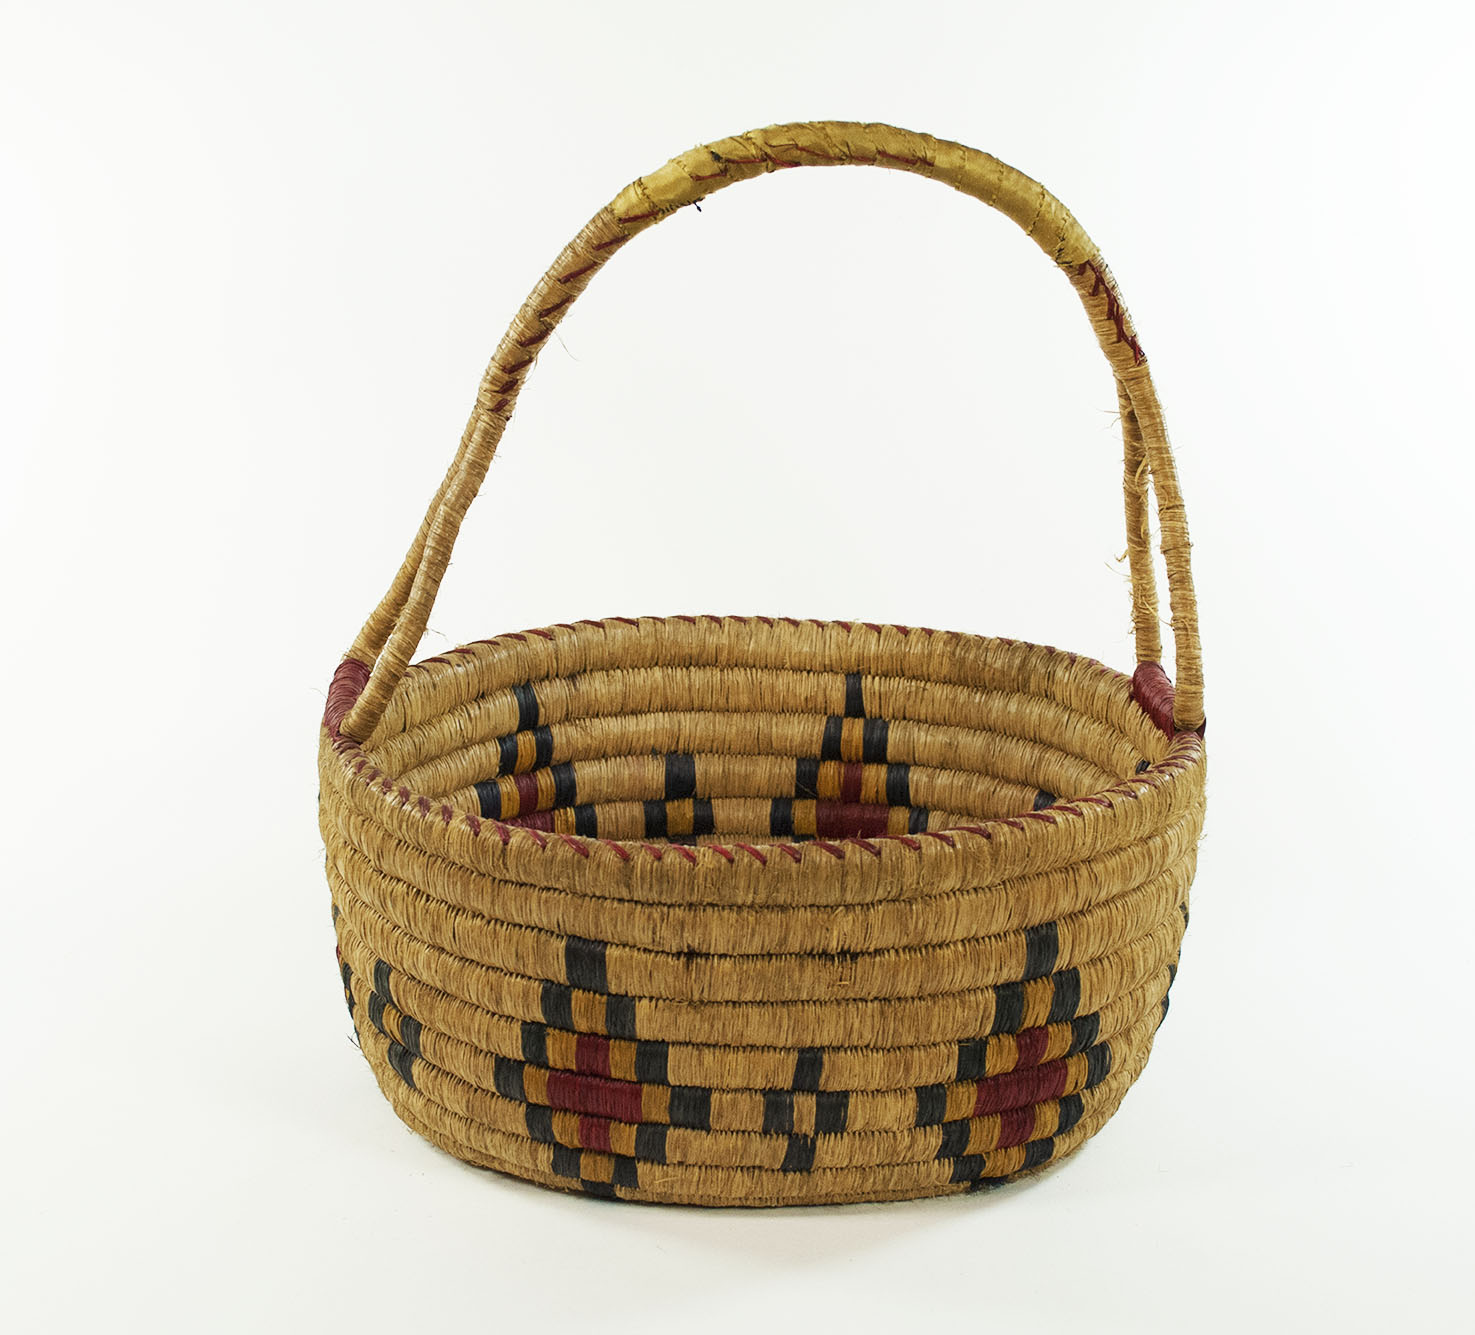 [basket with handle]